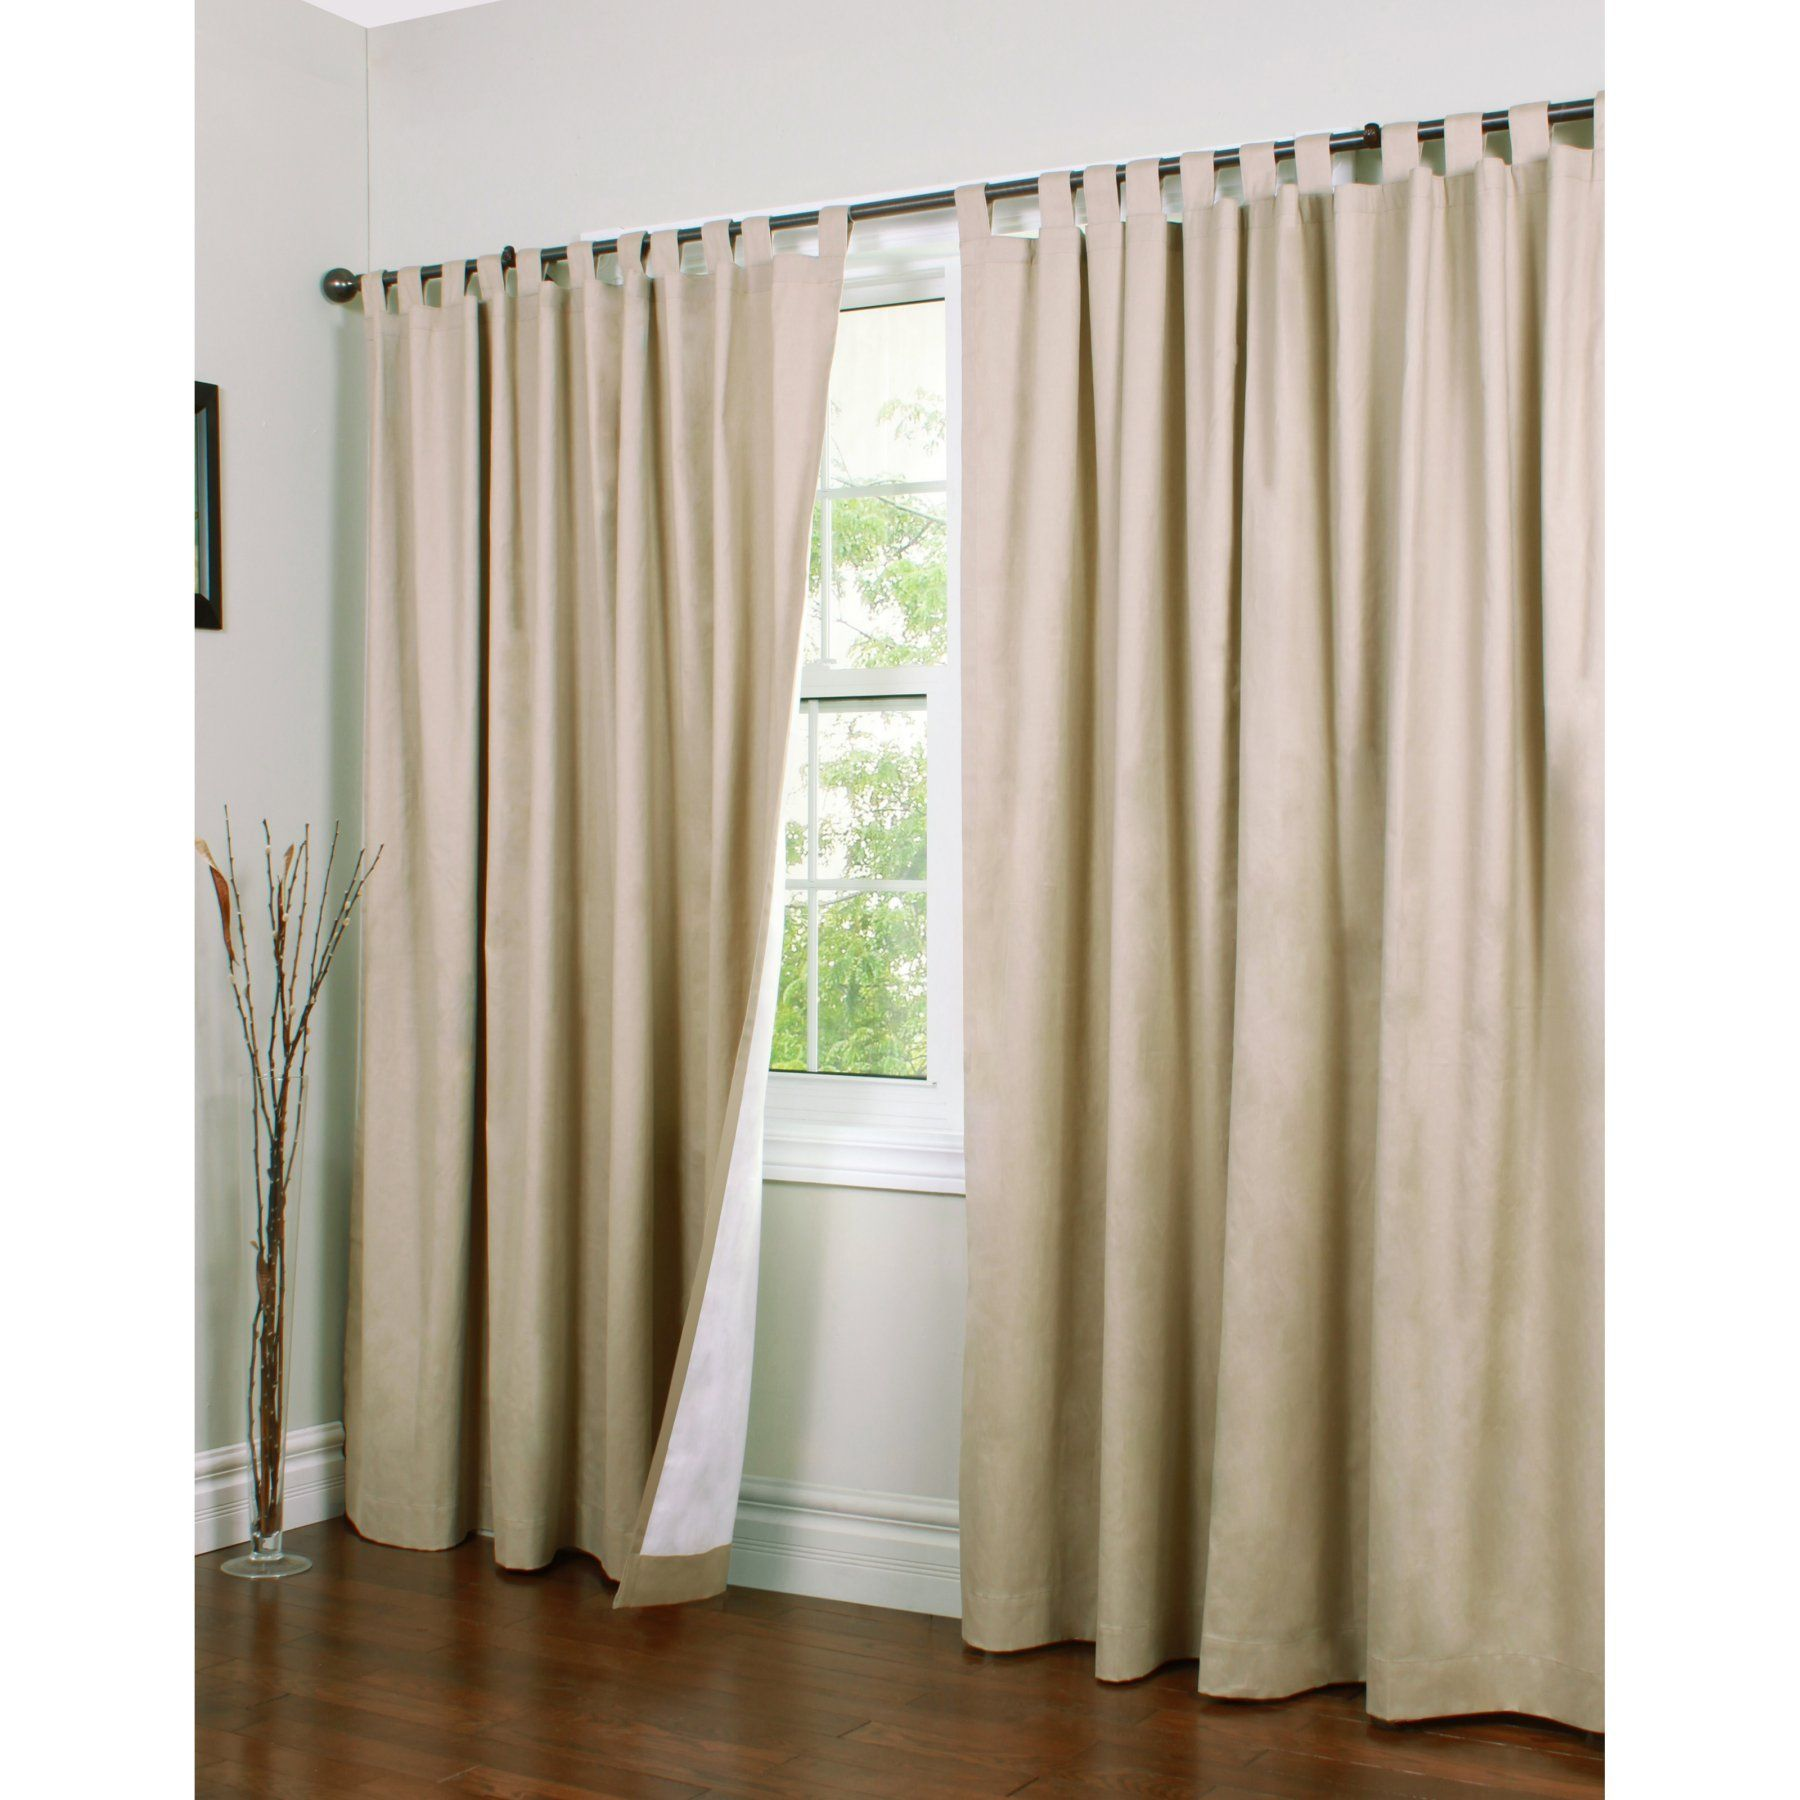 Double Wide Curtain Panels Thermalogic Weathermate Tab Top Double Width Curtain Panel One